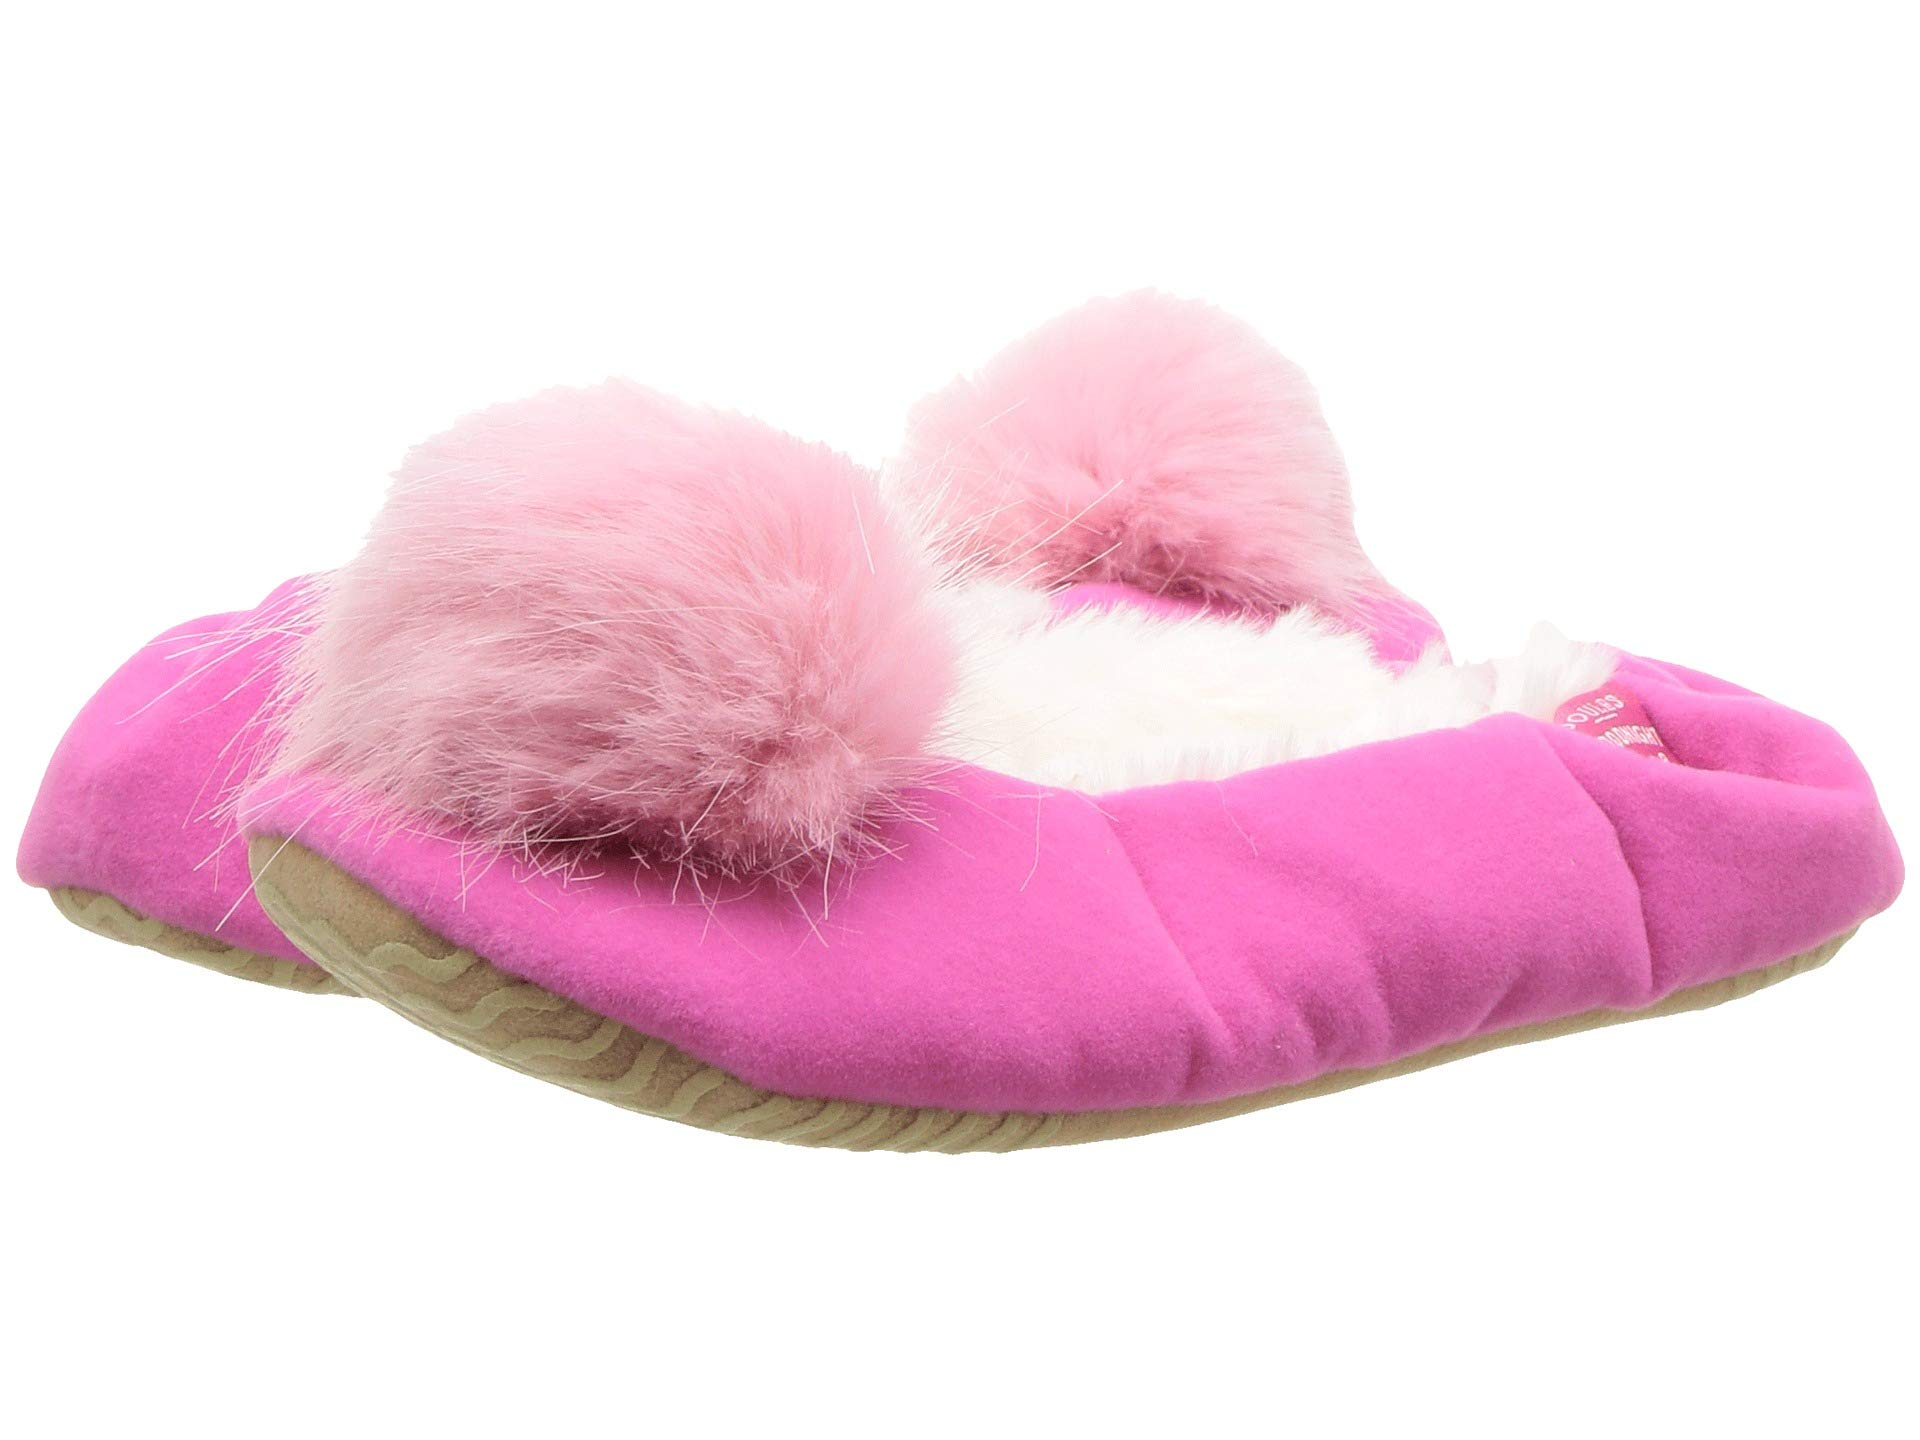 joules kids velvet ballet slipper with pom pom (toddler/little kid)